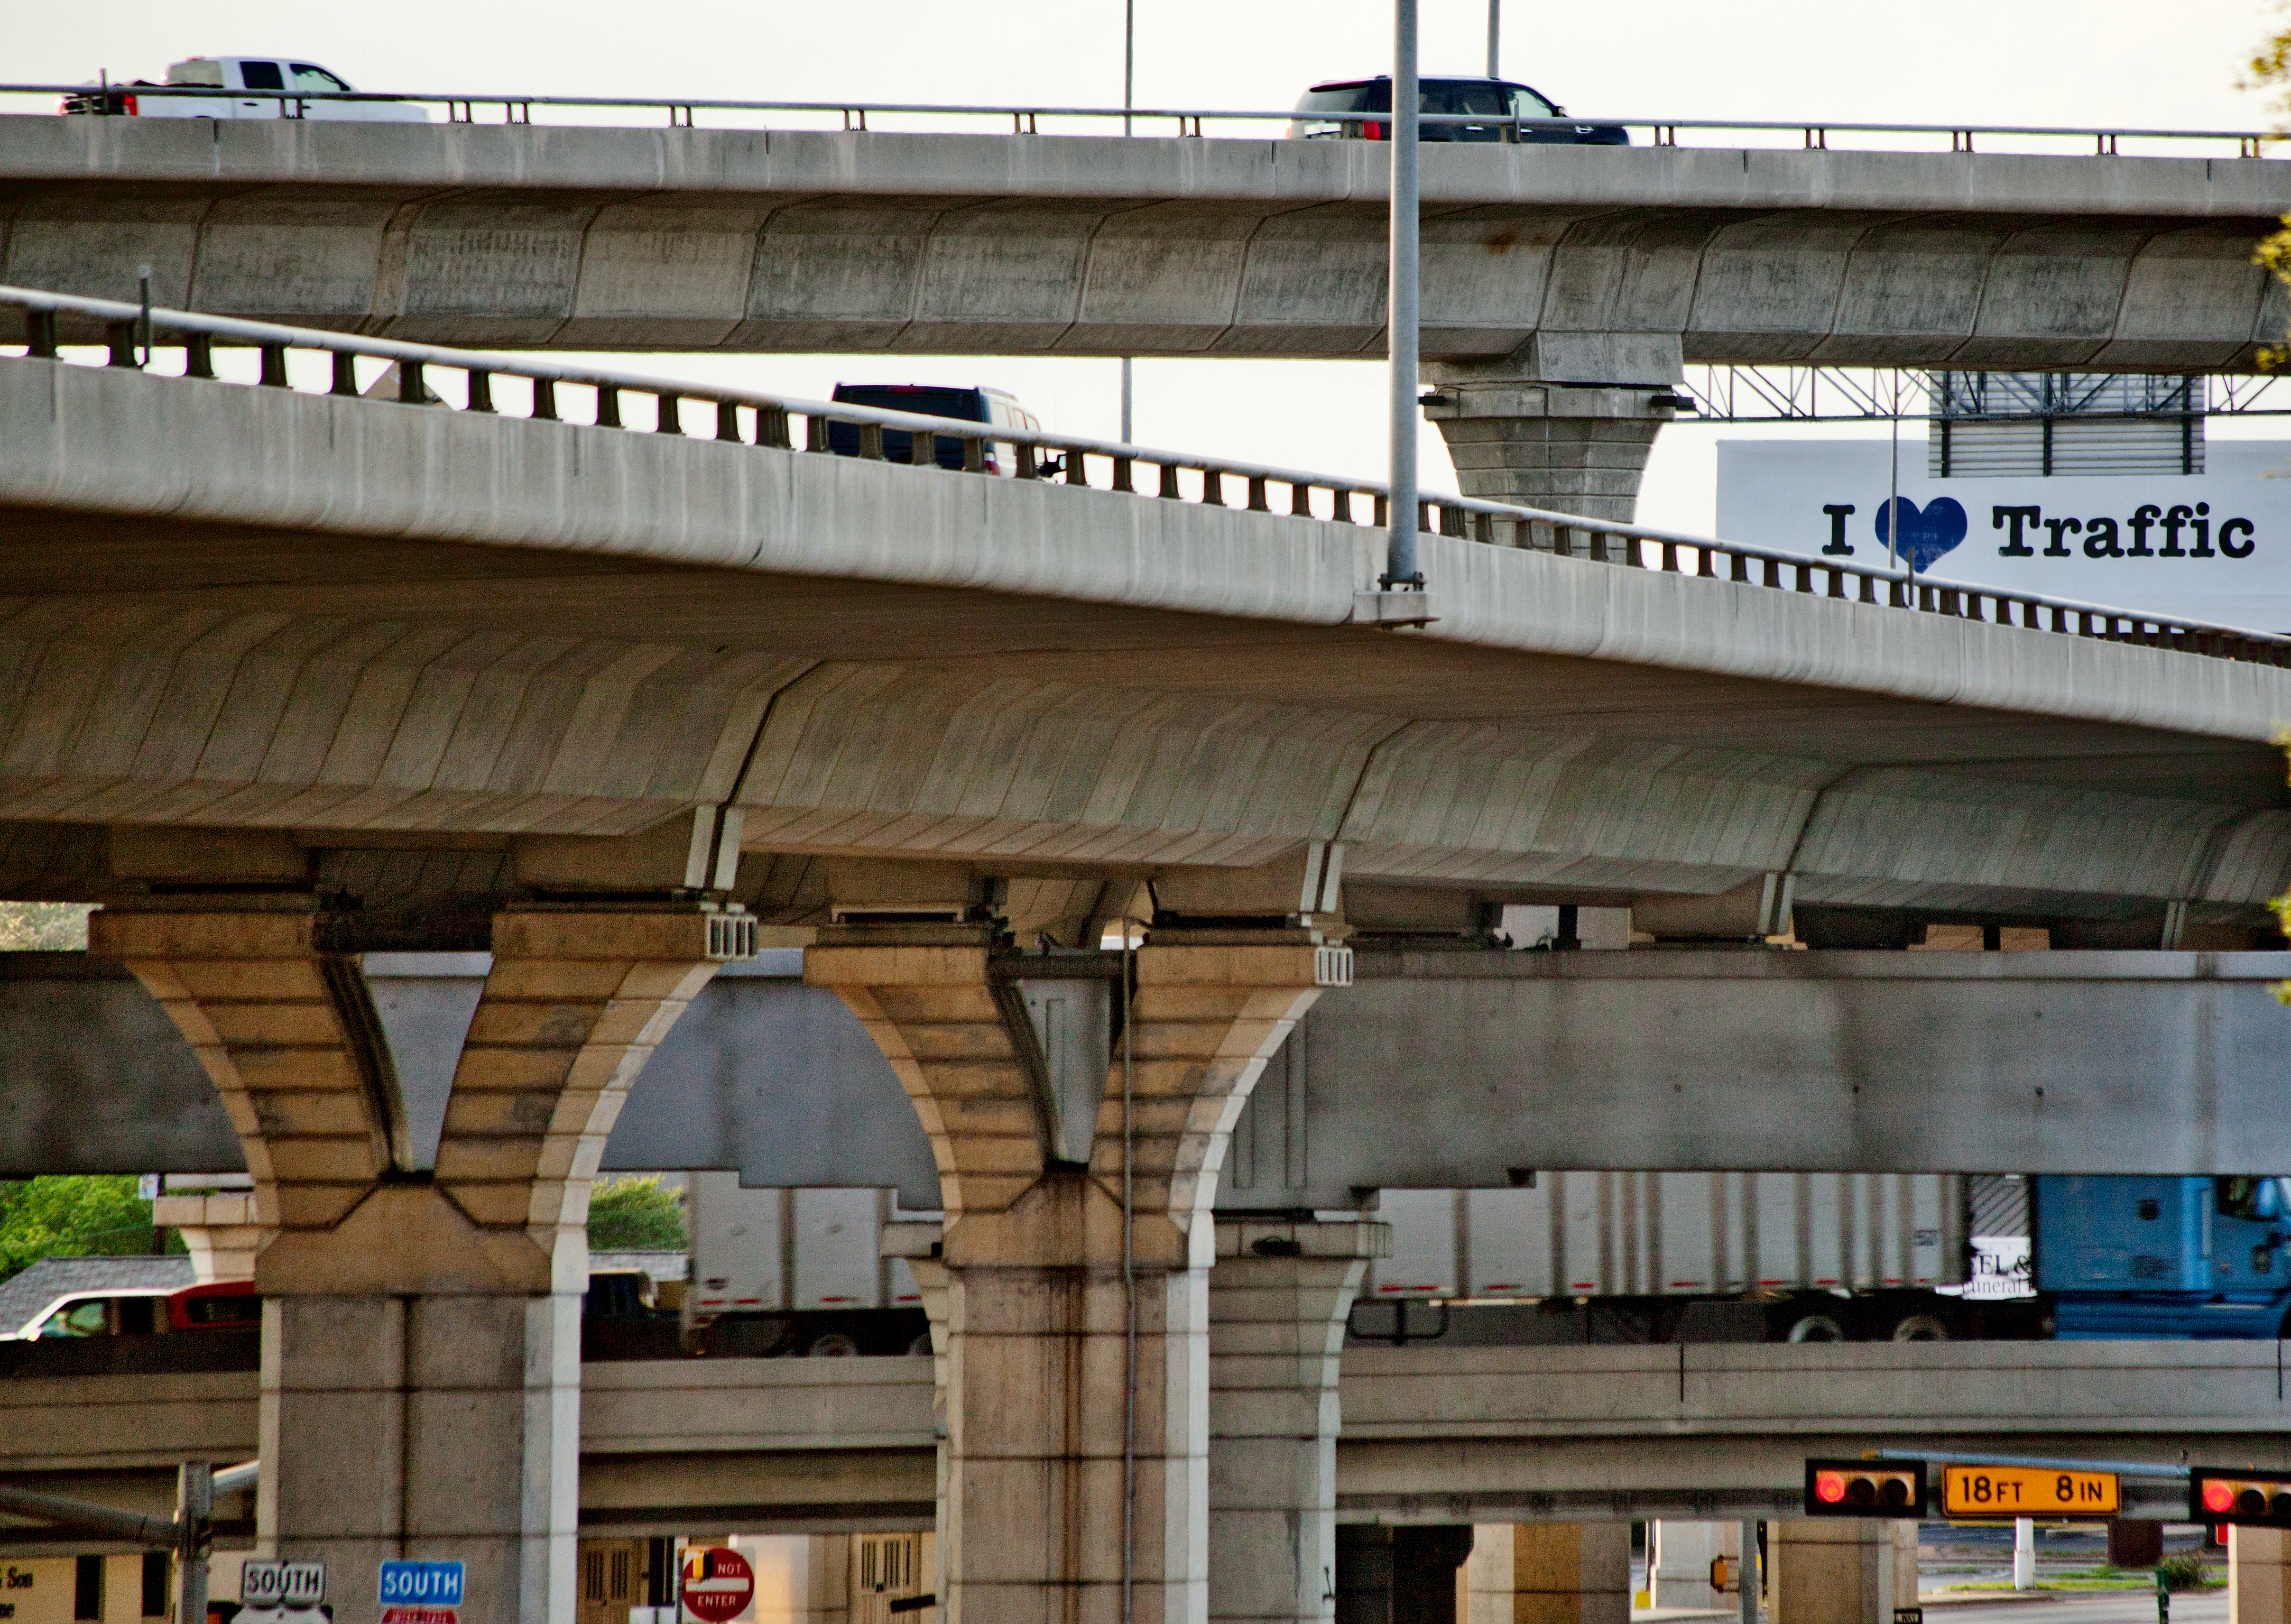 """A billboard with the text """" I love Traffic"""" is seen through the multistacked interchange between Interstate 35 and US-183 in North Austin."""